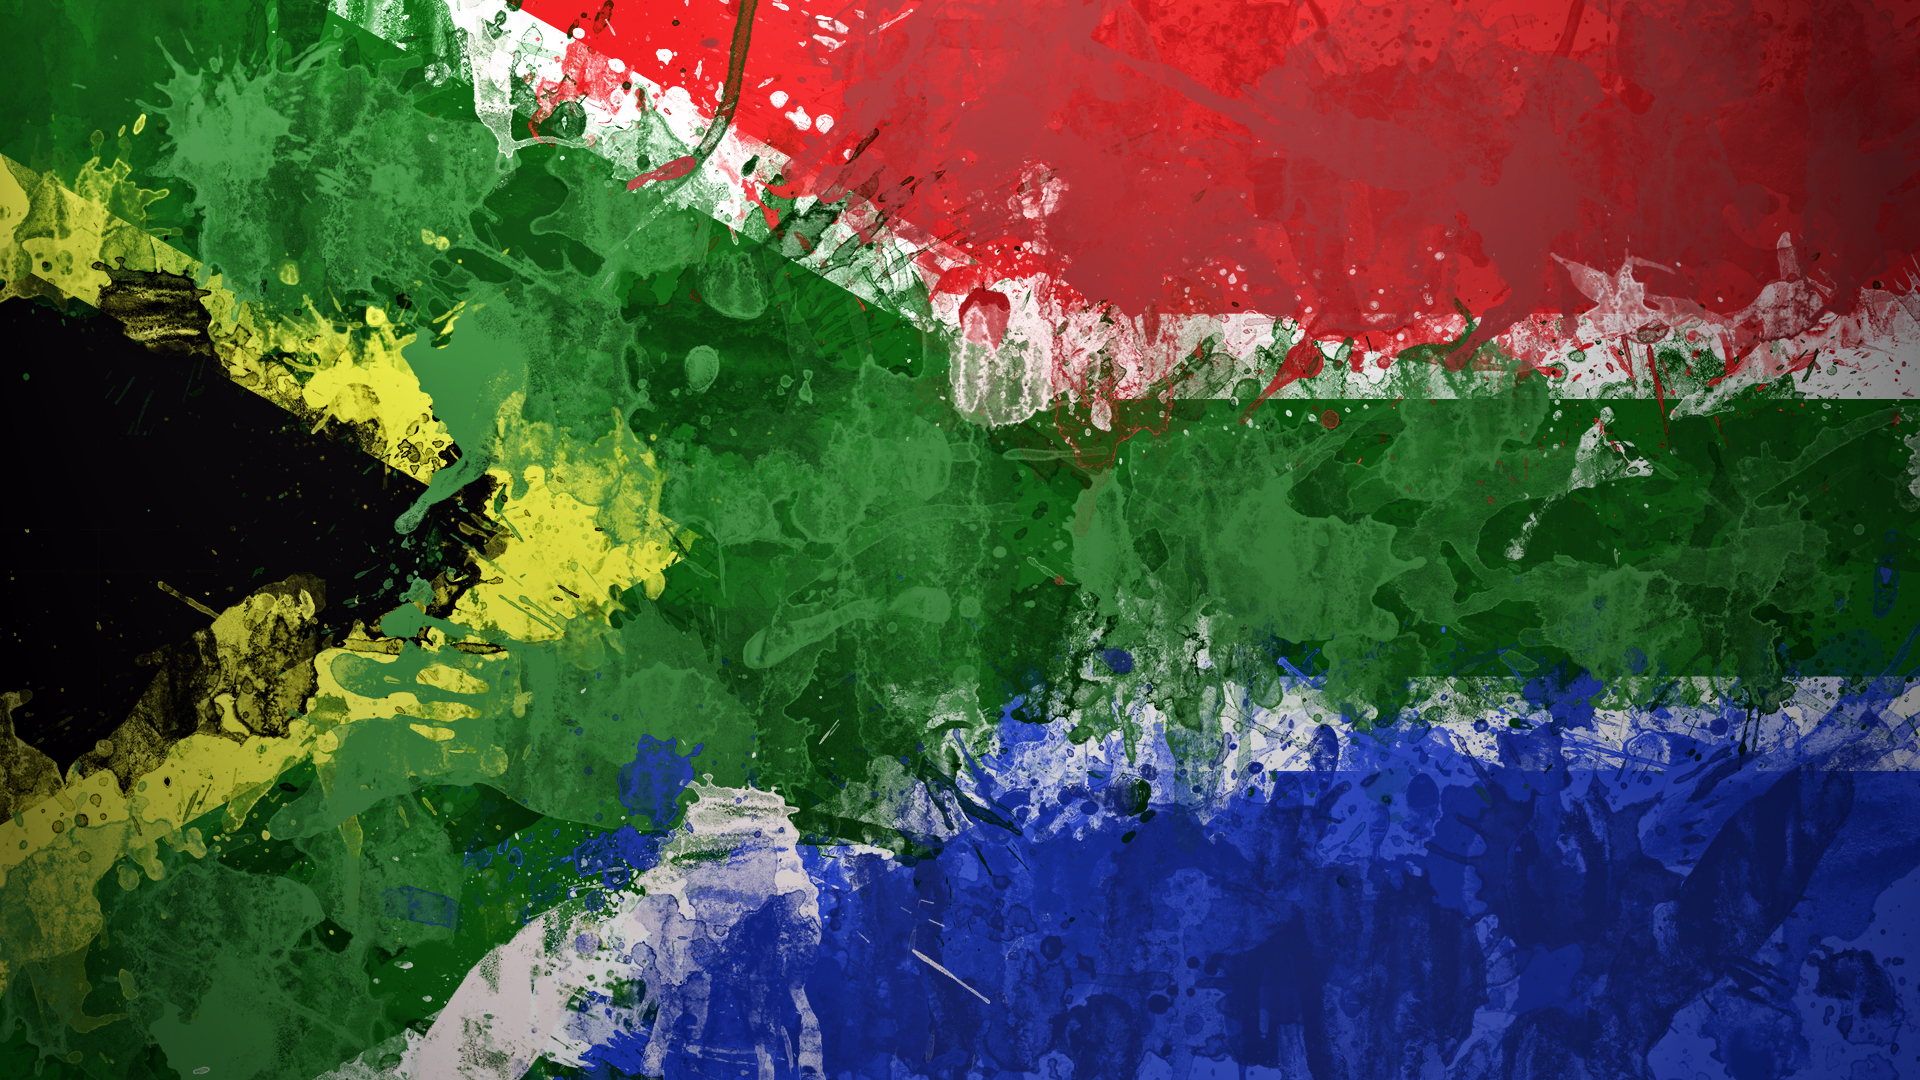 2011162ecsouth african flag wallpaper by magnaen d3inffljpg 1920x1080